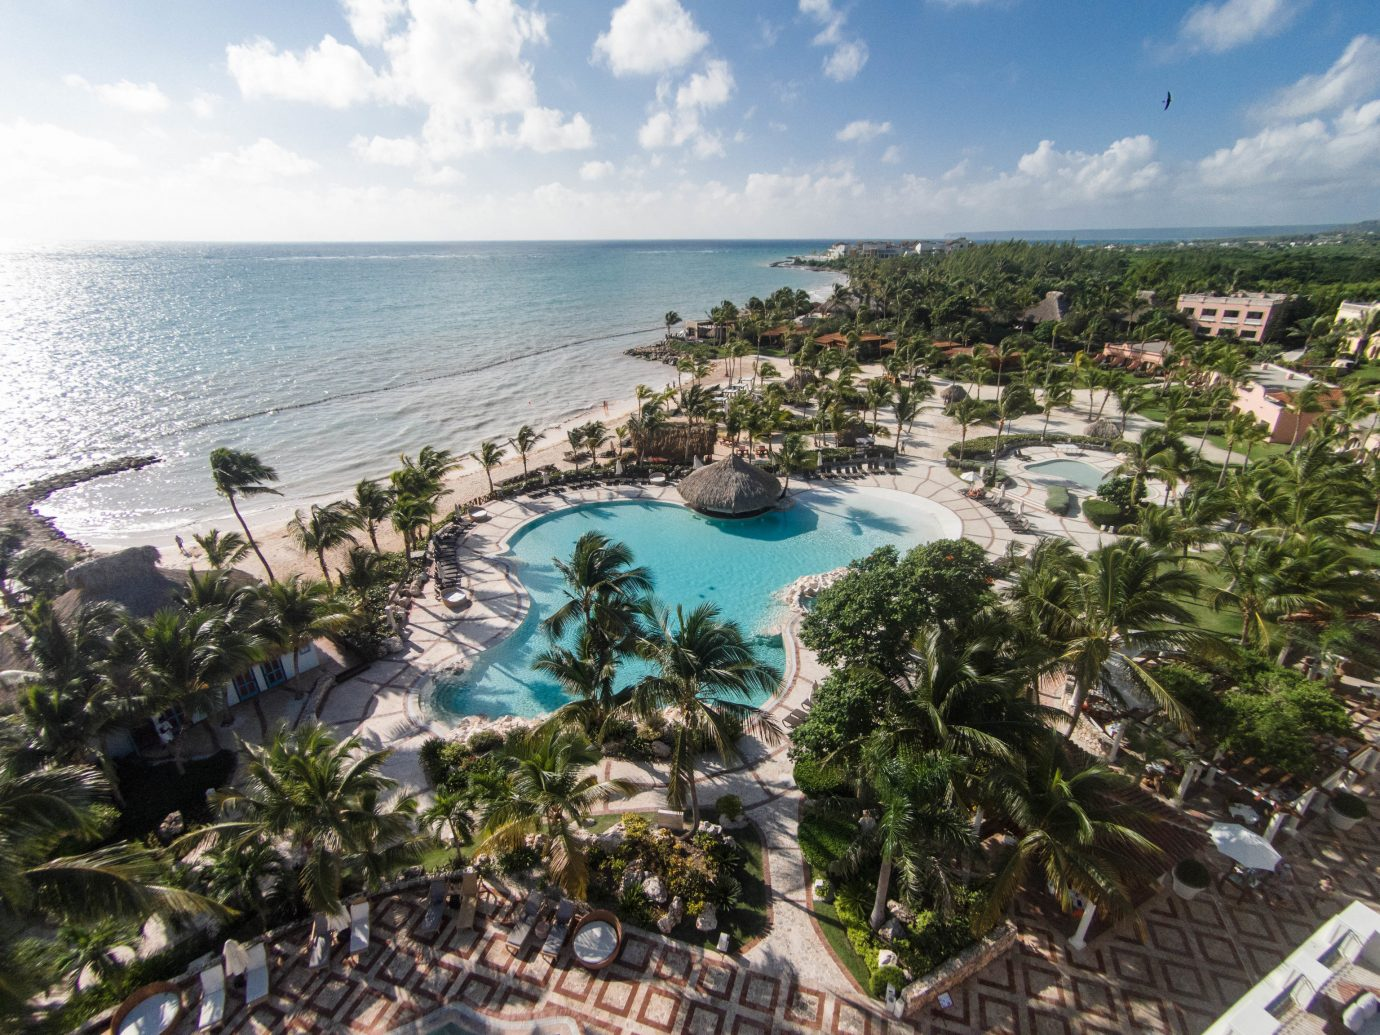 The 5 Best AdultsOnly AllInclusive Resorts in Punta Cana